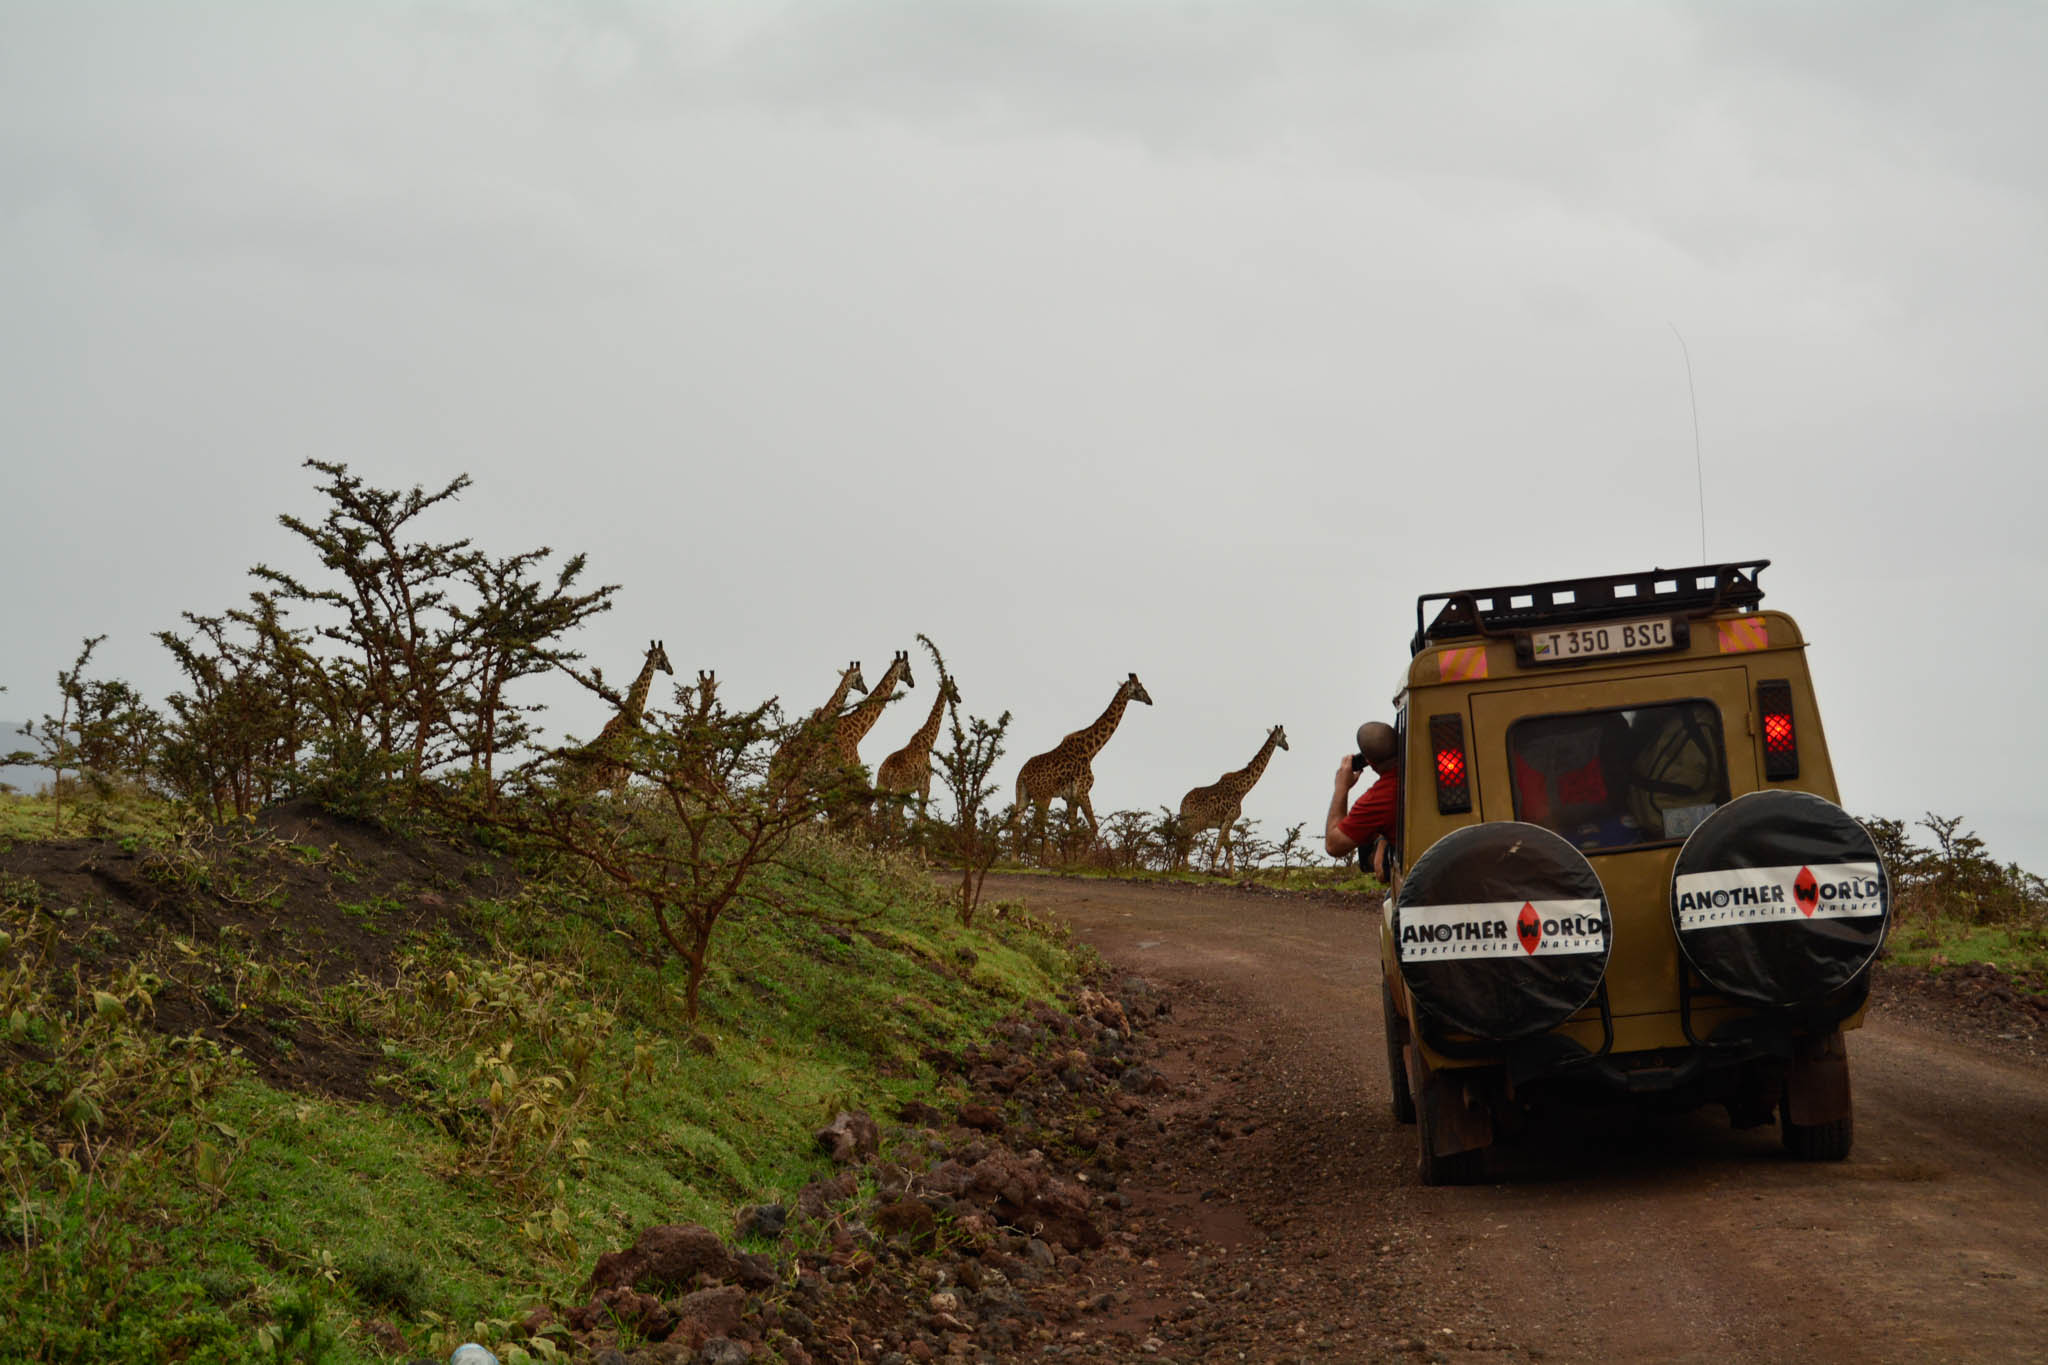 One of the tour operators stop to let their tourists photograph the Giraffes